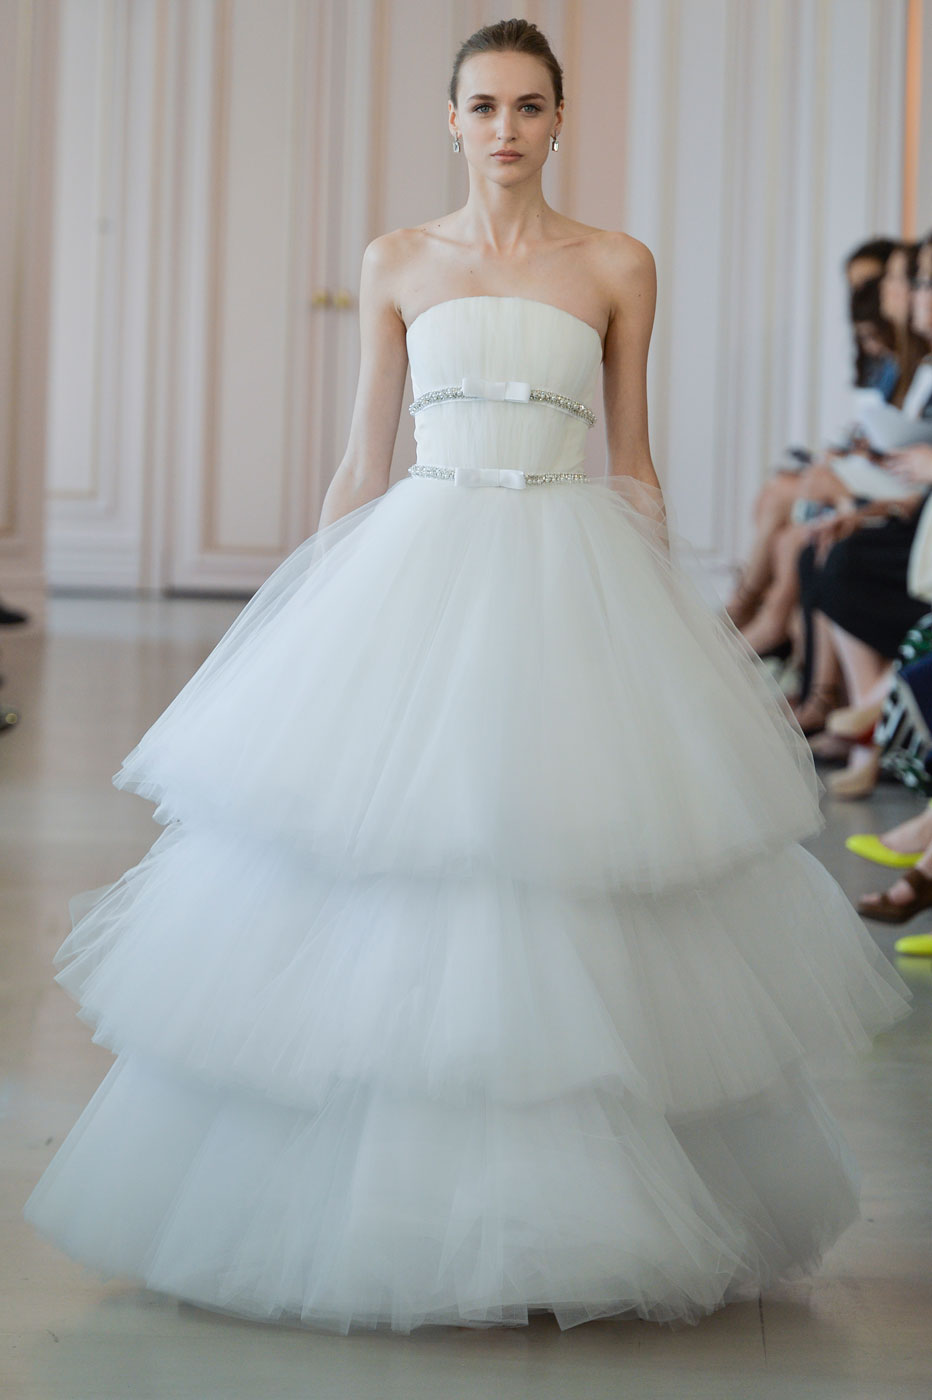 Attractive Wedding Gowns For Rent Frieze - All Wedding Dresses ...